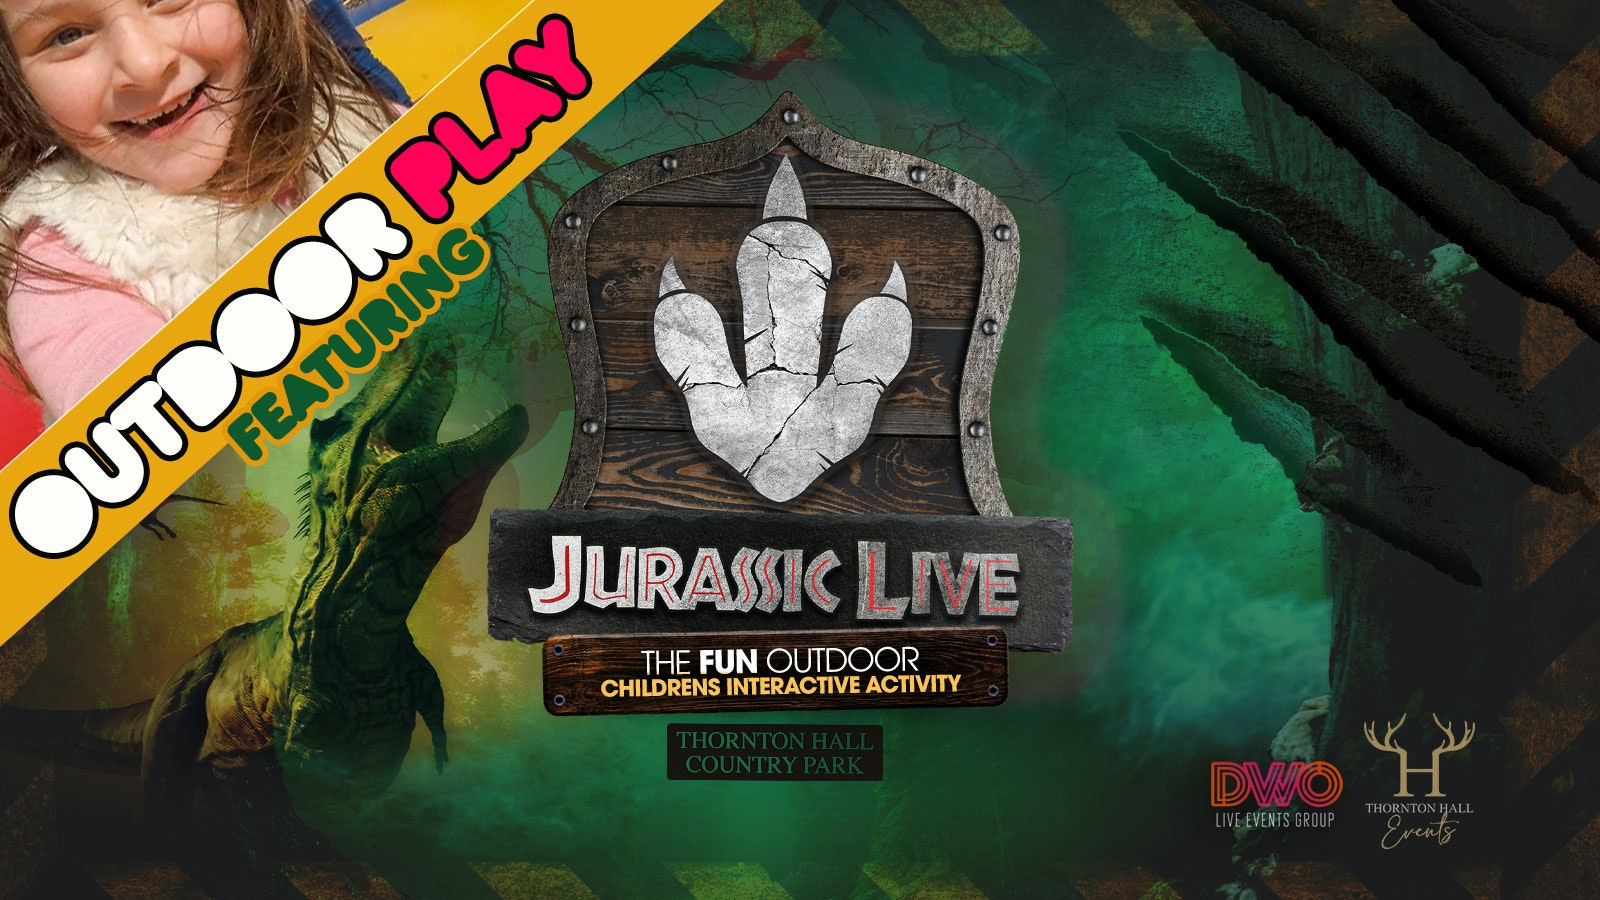 Jurassic Live inc Outdoor Play (Am) – Sunday 25th April – 10am